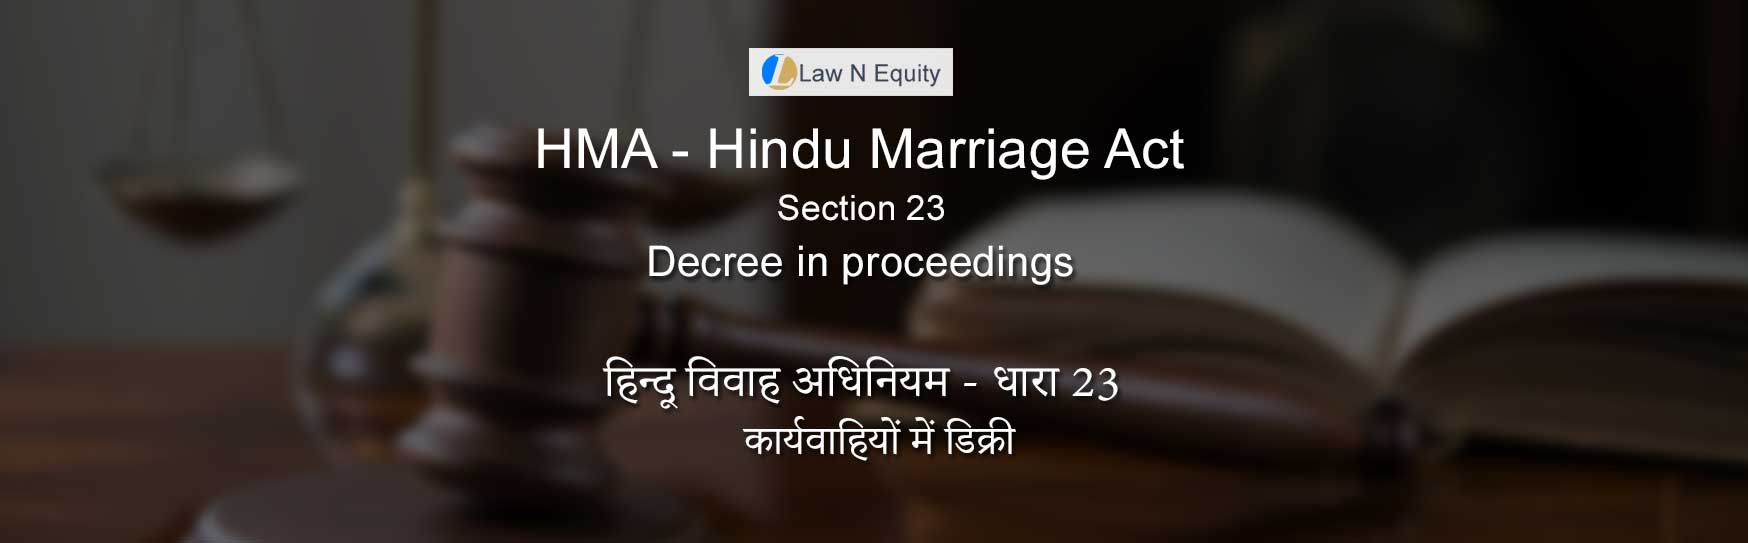 Hindu Marriage Act(HMA) Section 23